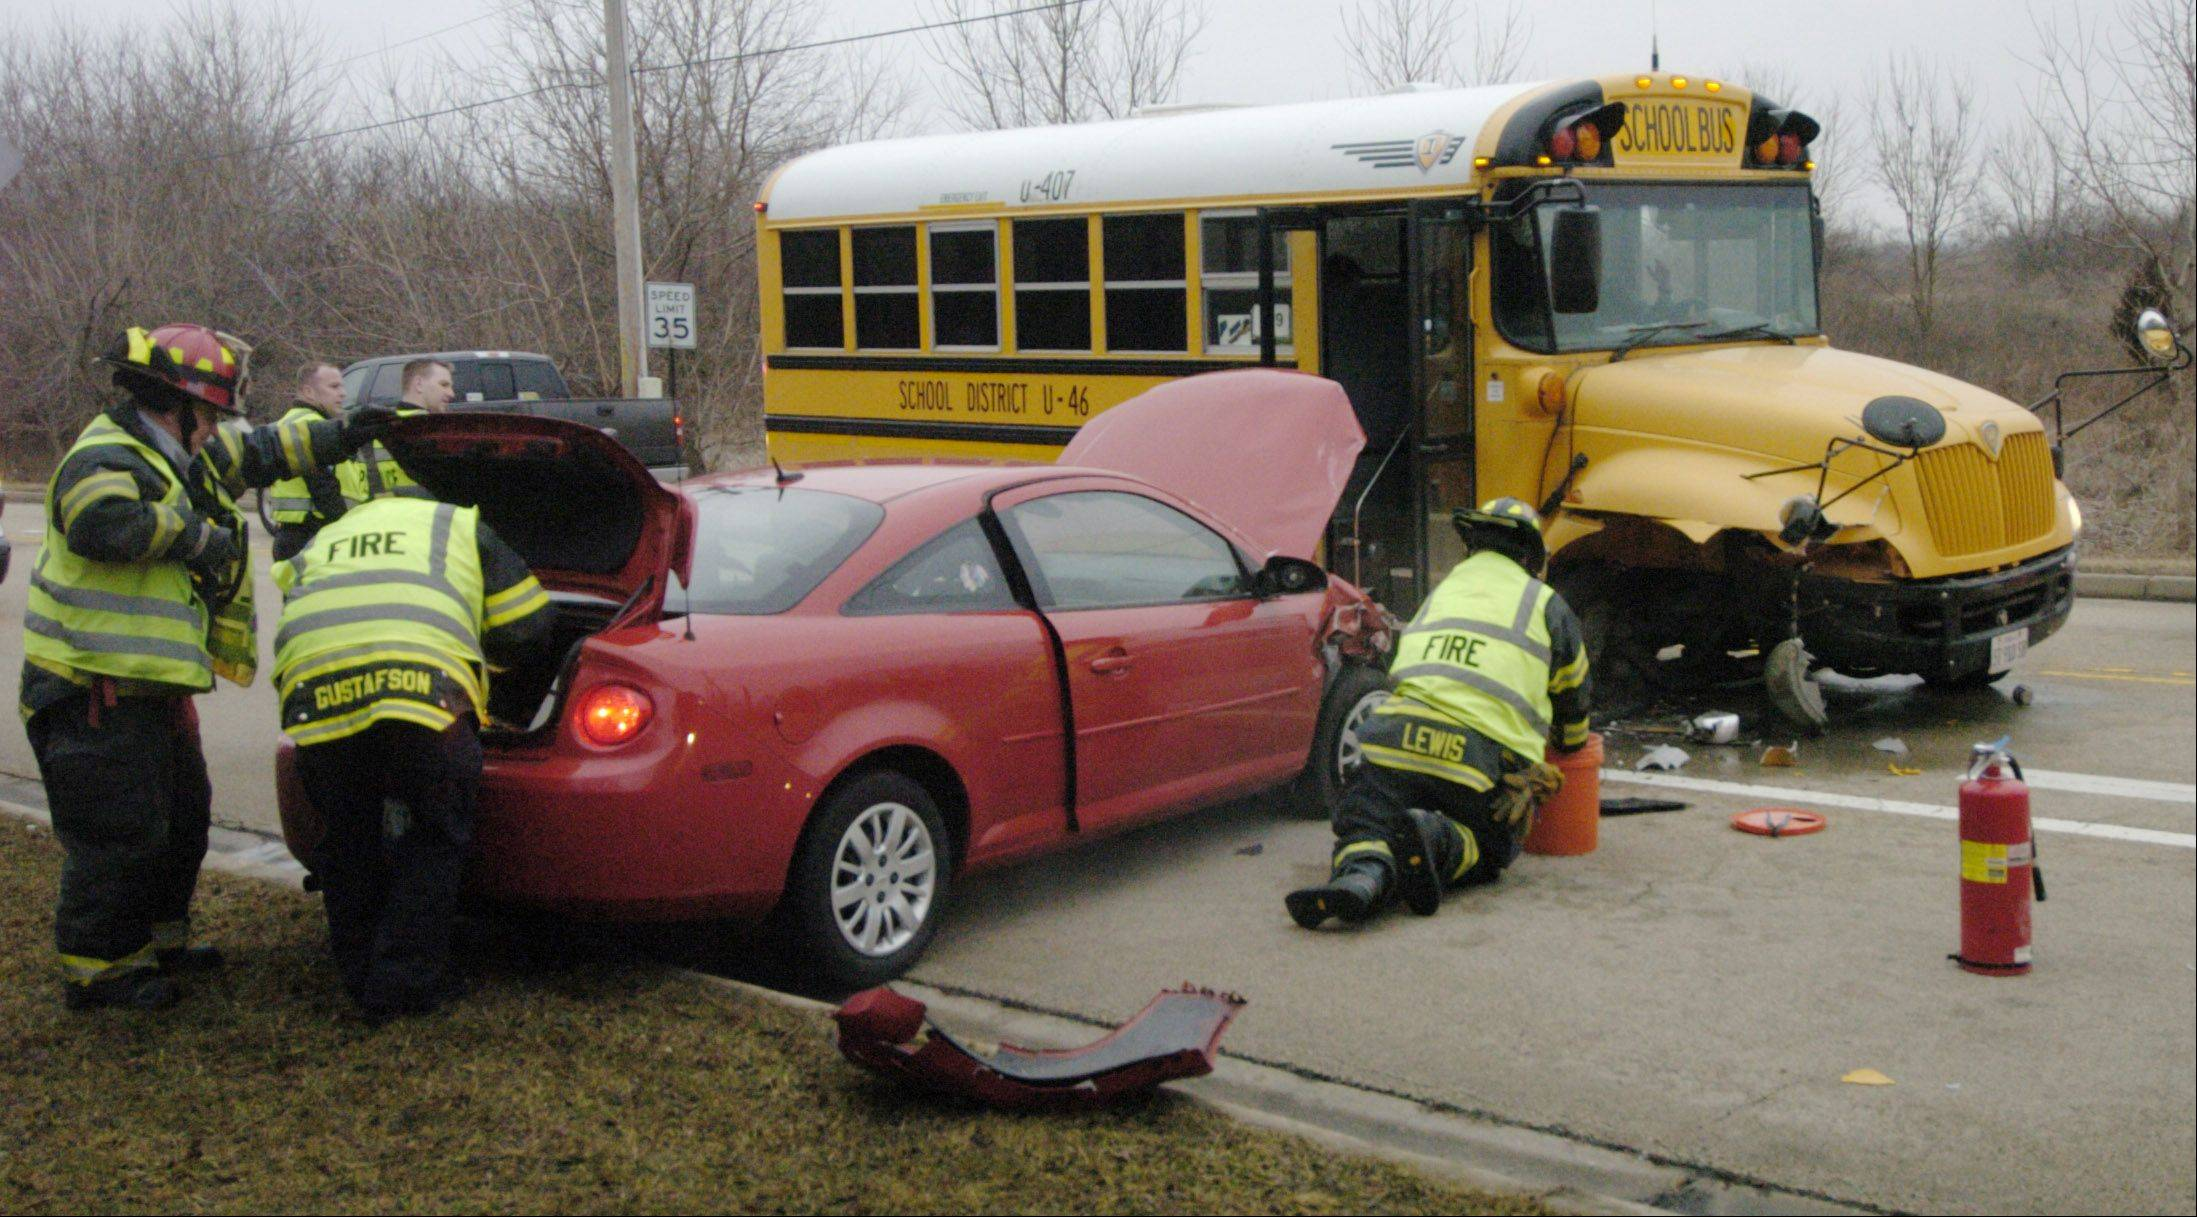 Bartlett police and firefighters responded to the scene of a crash between a school bus and a car at the intersection of South Bartlett and Schick roads, just east of Bartlett High School, Thursday morning. There were no students aboard the bus, police said.